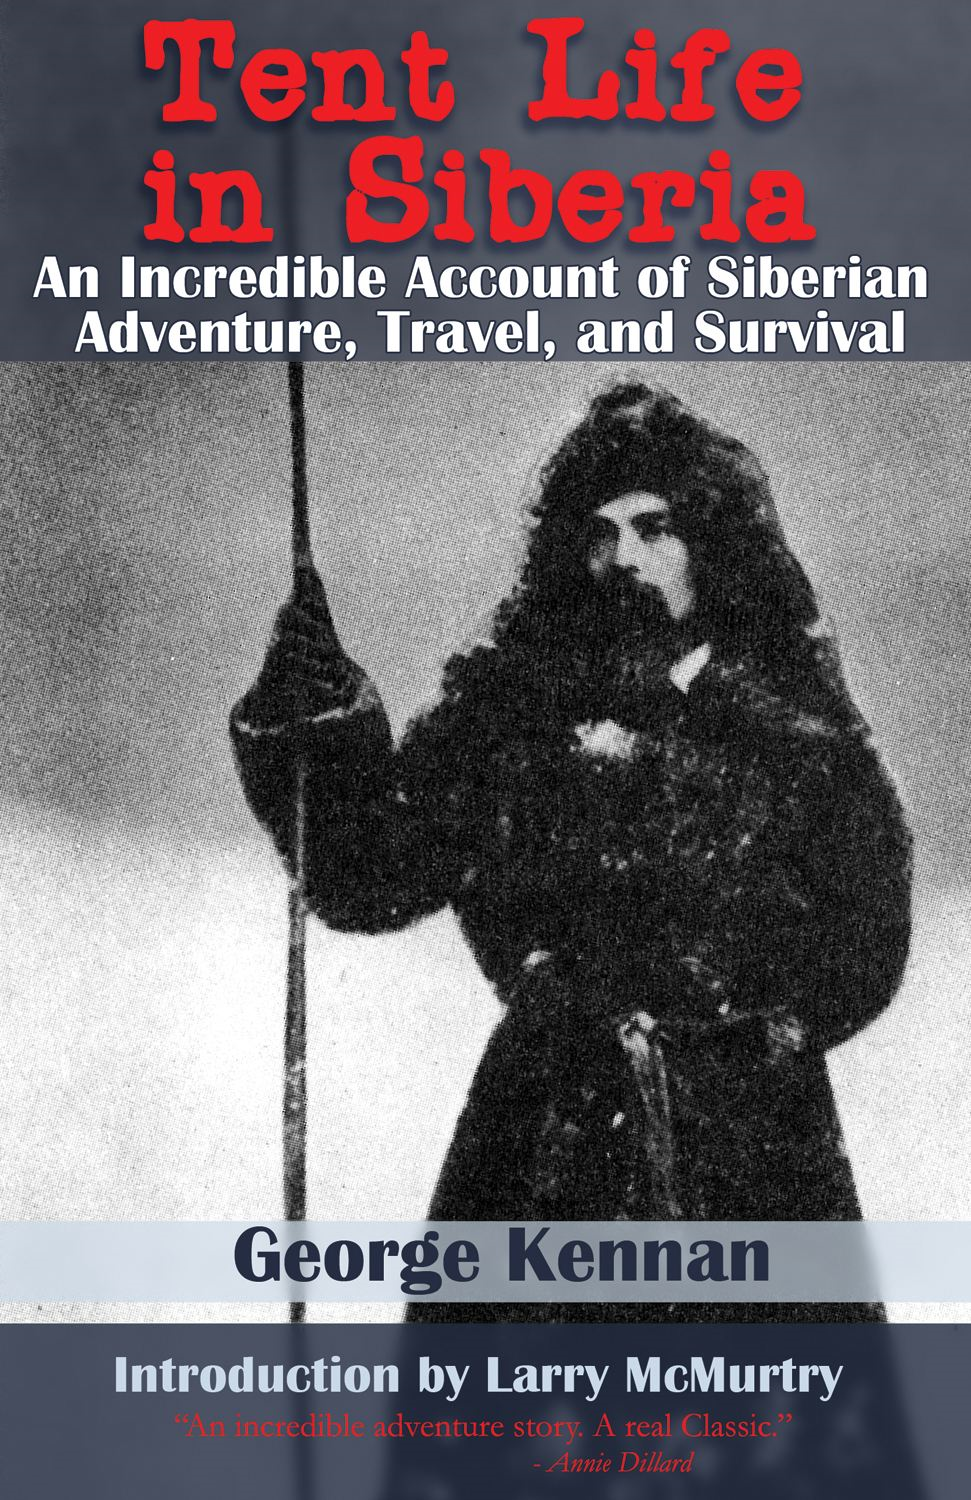 Tent Life In Siberia: An Incredible Account of Siberian Adventure Travel and Survival By: George Kennan